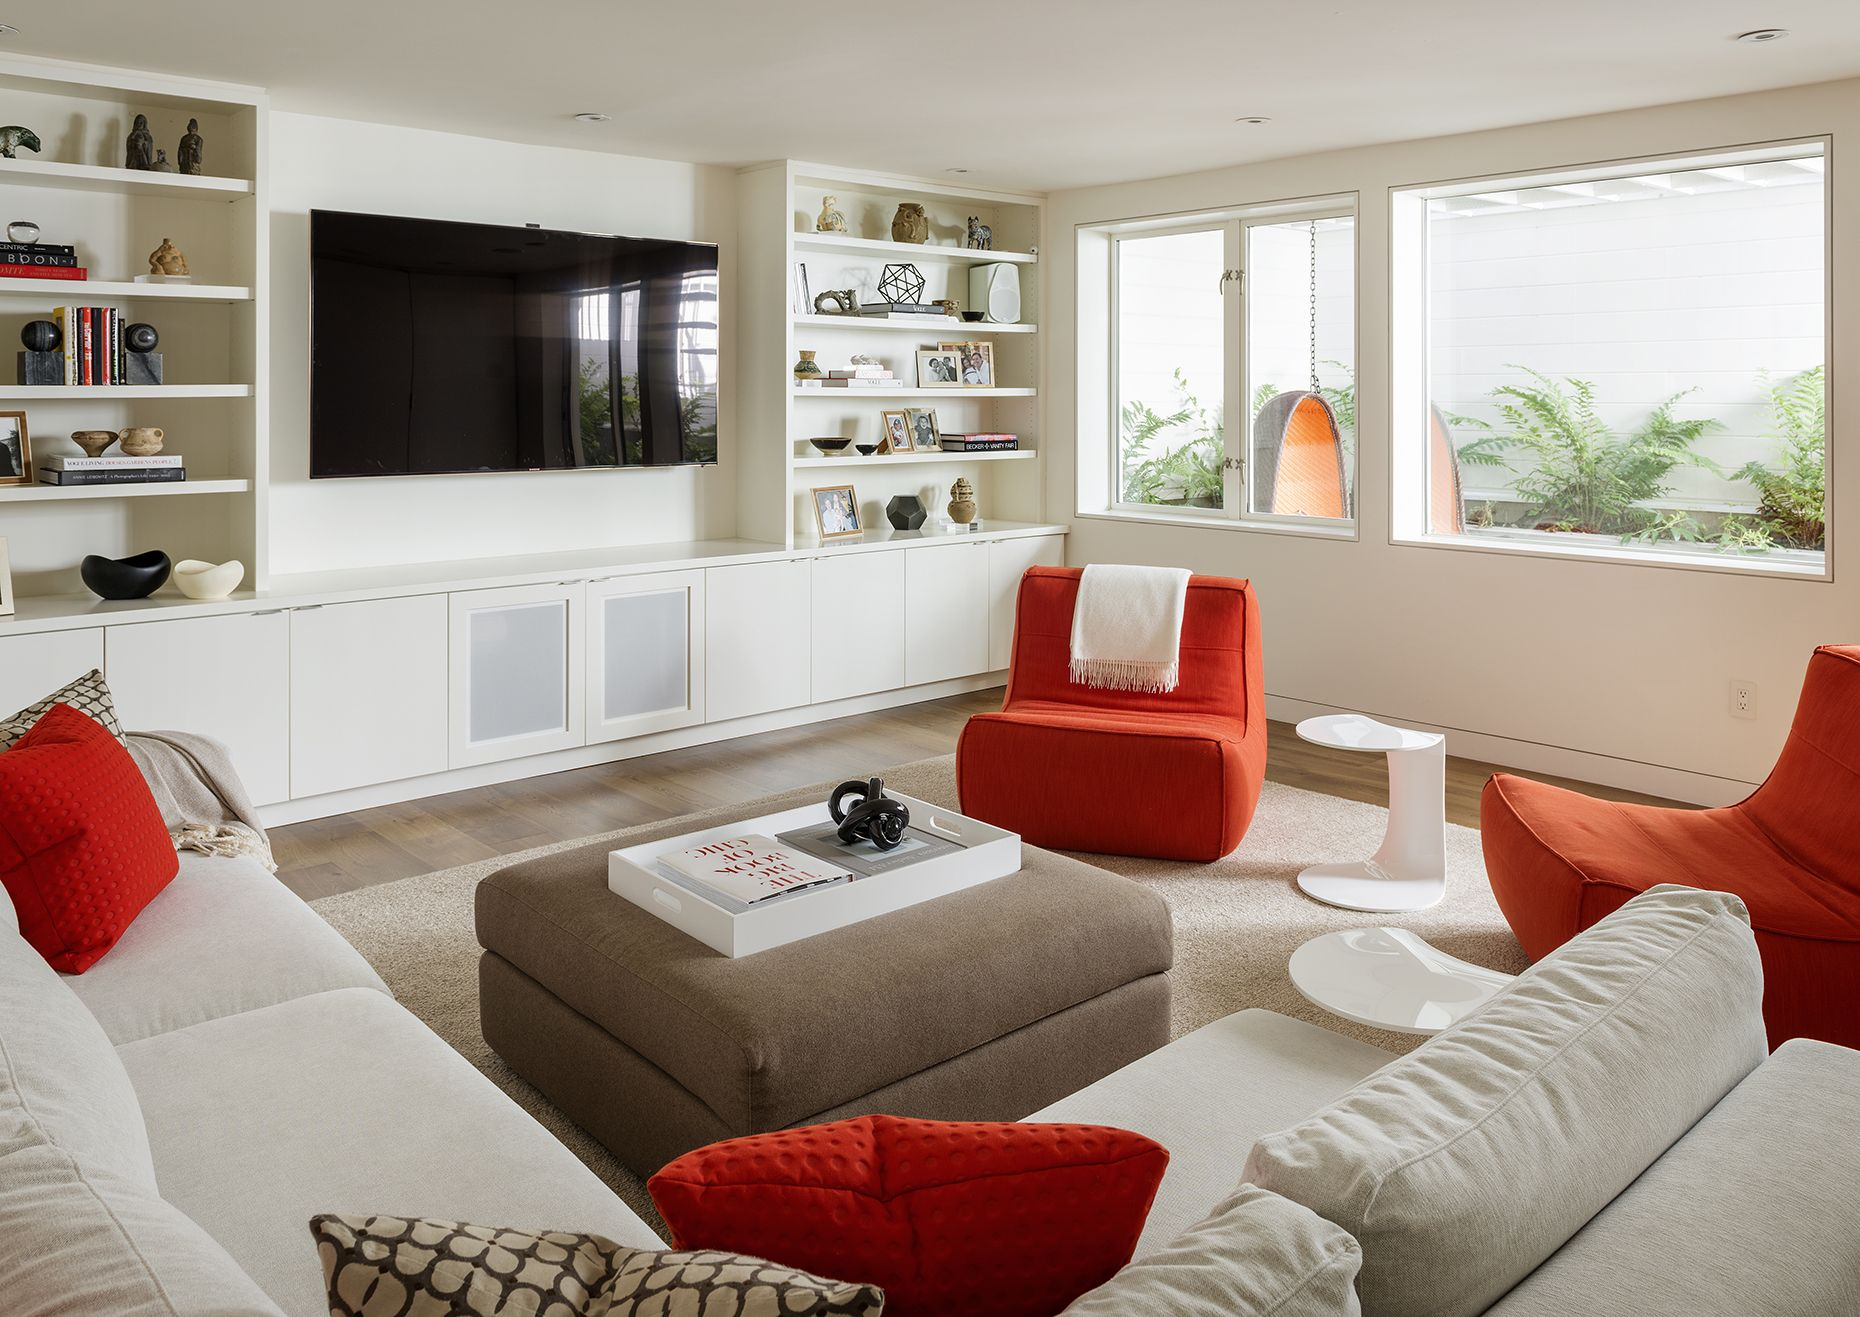 Family room sutro architects built in storage tv cabinets design projects modern